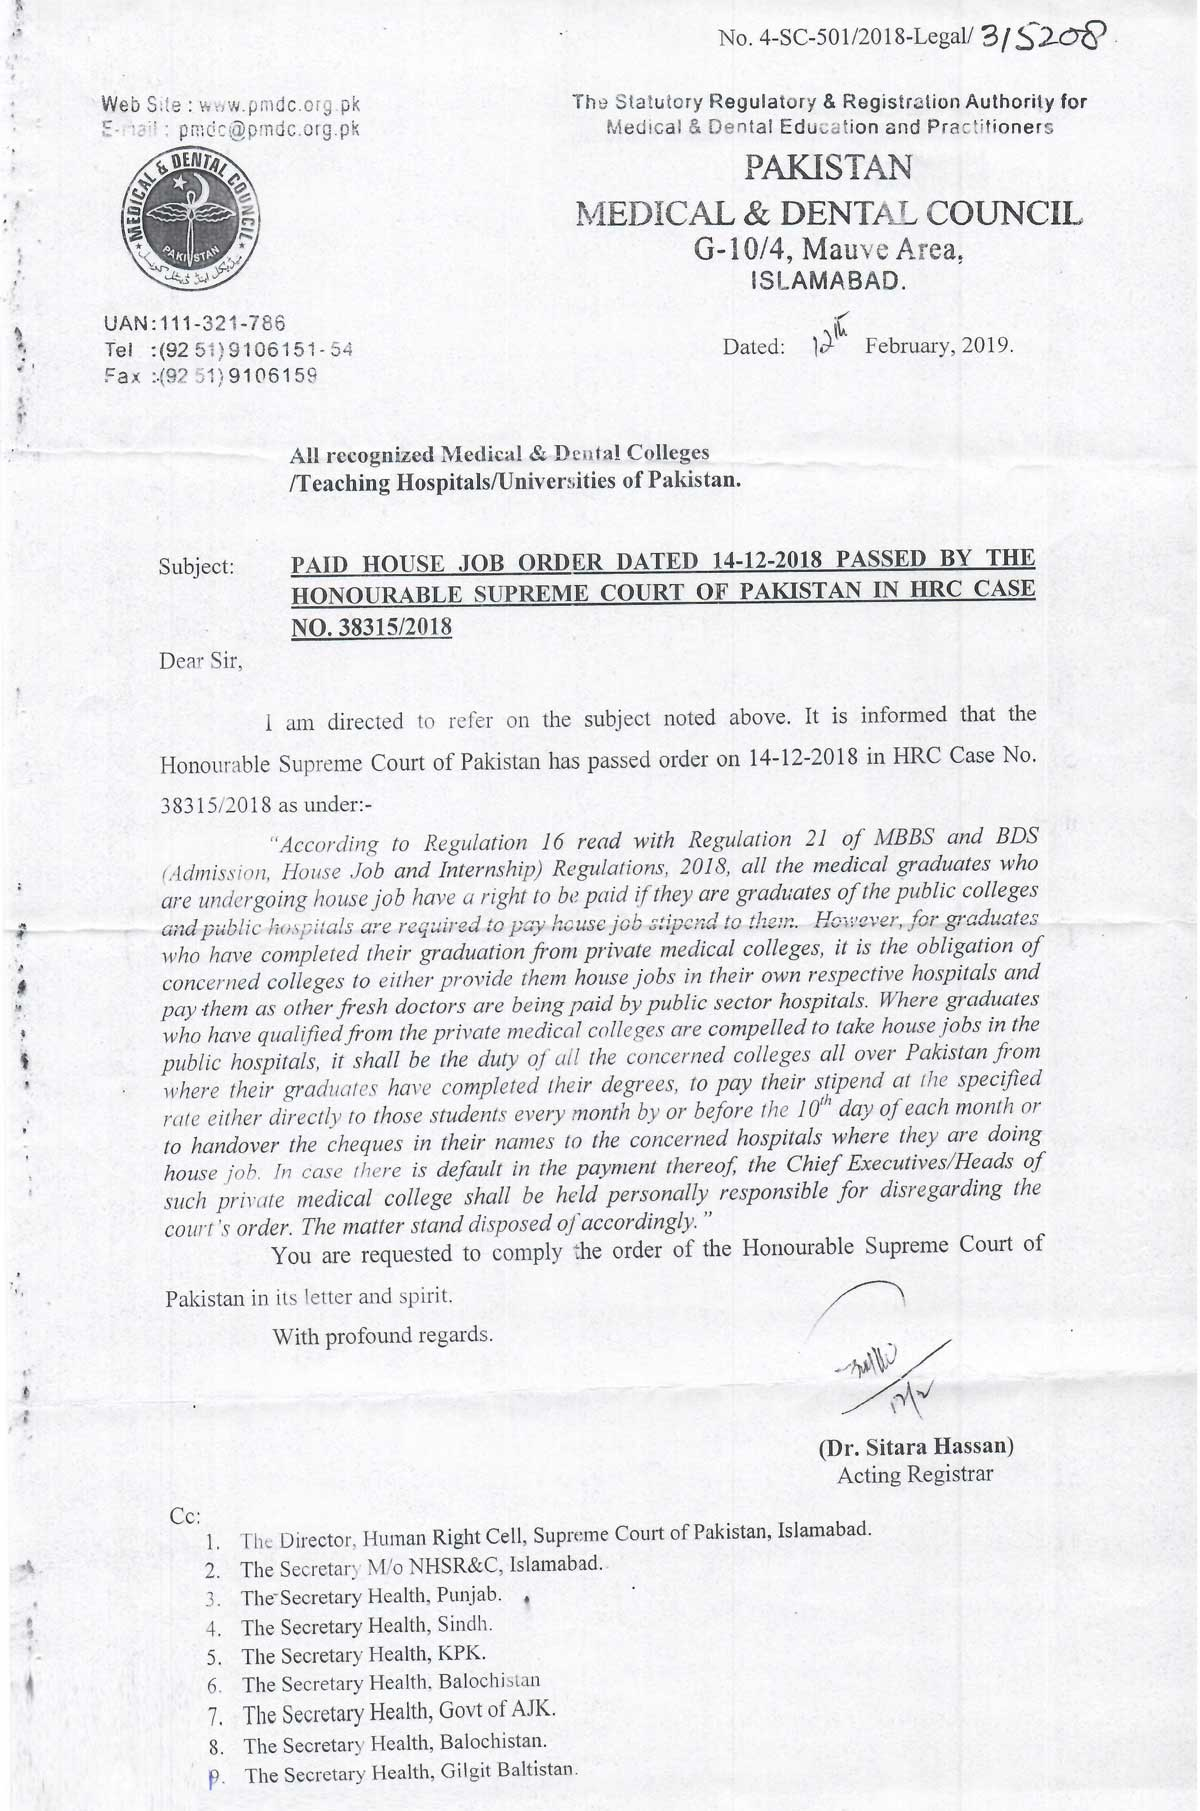 Paid House Job Order Dated 14-12-2018 Passed by The